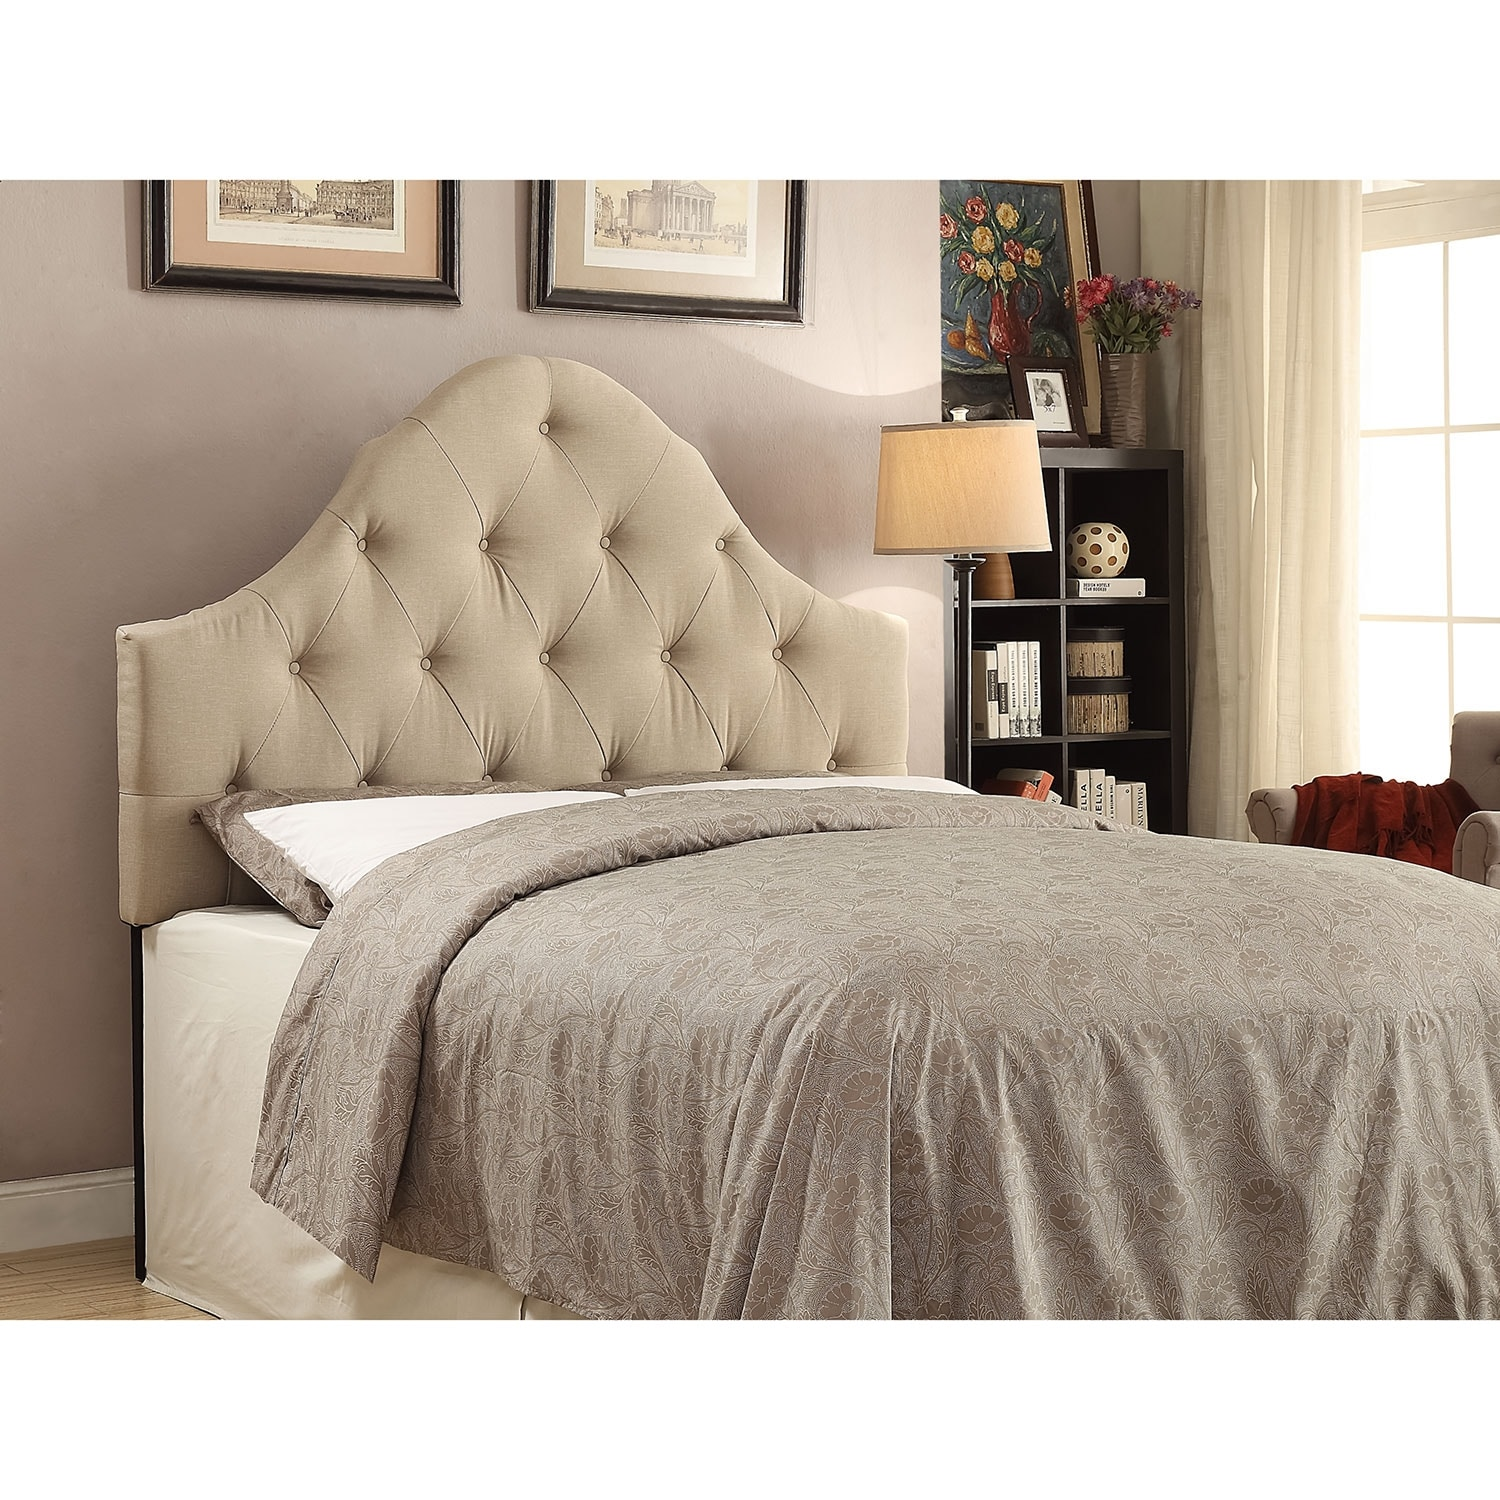 Bedroom Furniture - Brittany Full/Queen Headboard - Beige